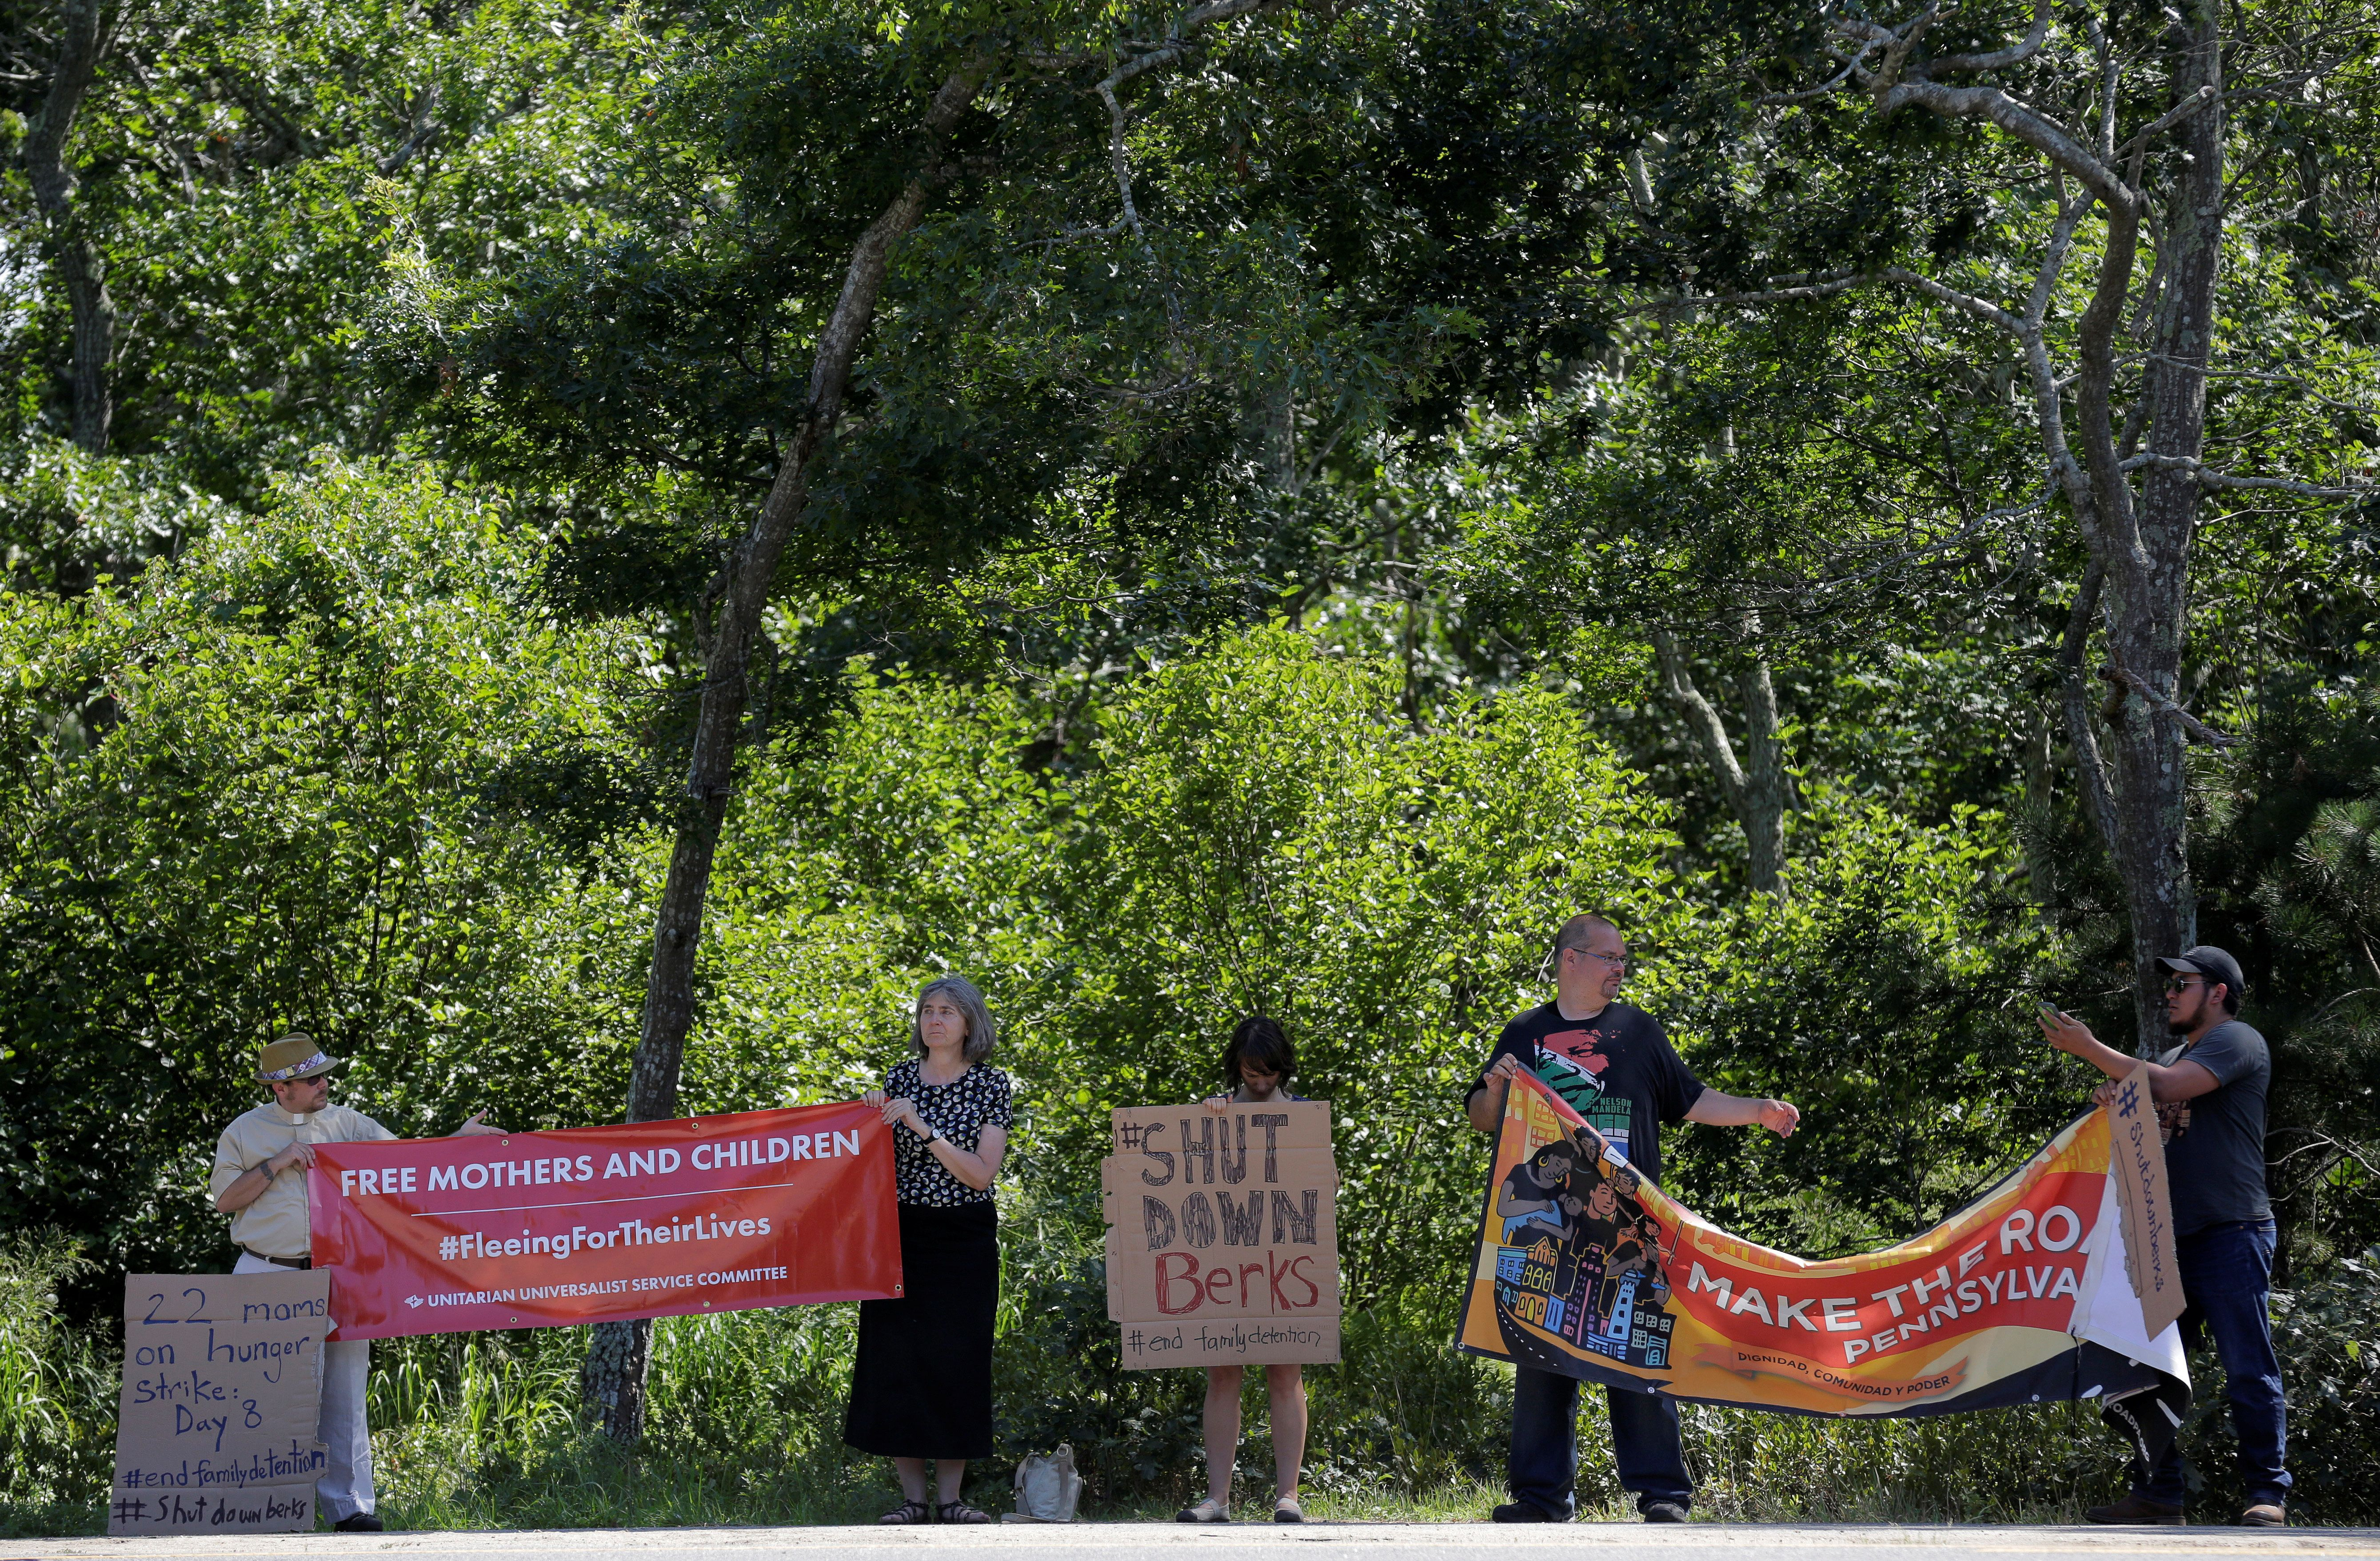 Protesters from the Unitarian Universalist Service Committee gather in front of where U.S. President Barack Obama is playing golf on his vacation in Edgartown, Massachusetts, U.S., August 15, 2016. The protesters are calling for the release of immigrant women on a hunger strike at the Berks County, Pennsylvania, migrant family detention center.     REUTERS/Joshua Roberts